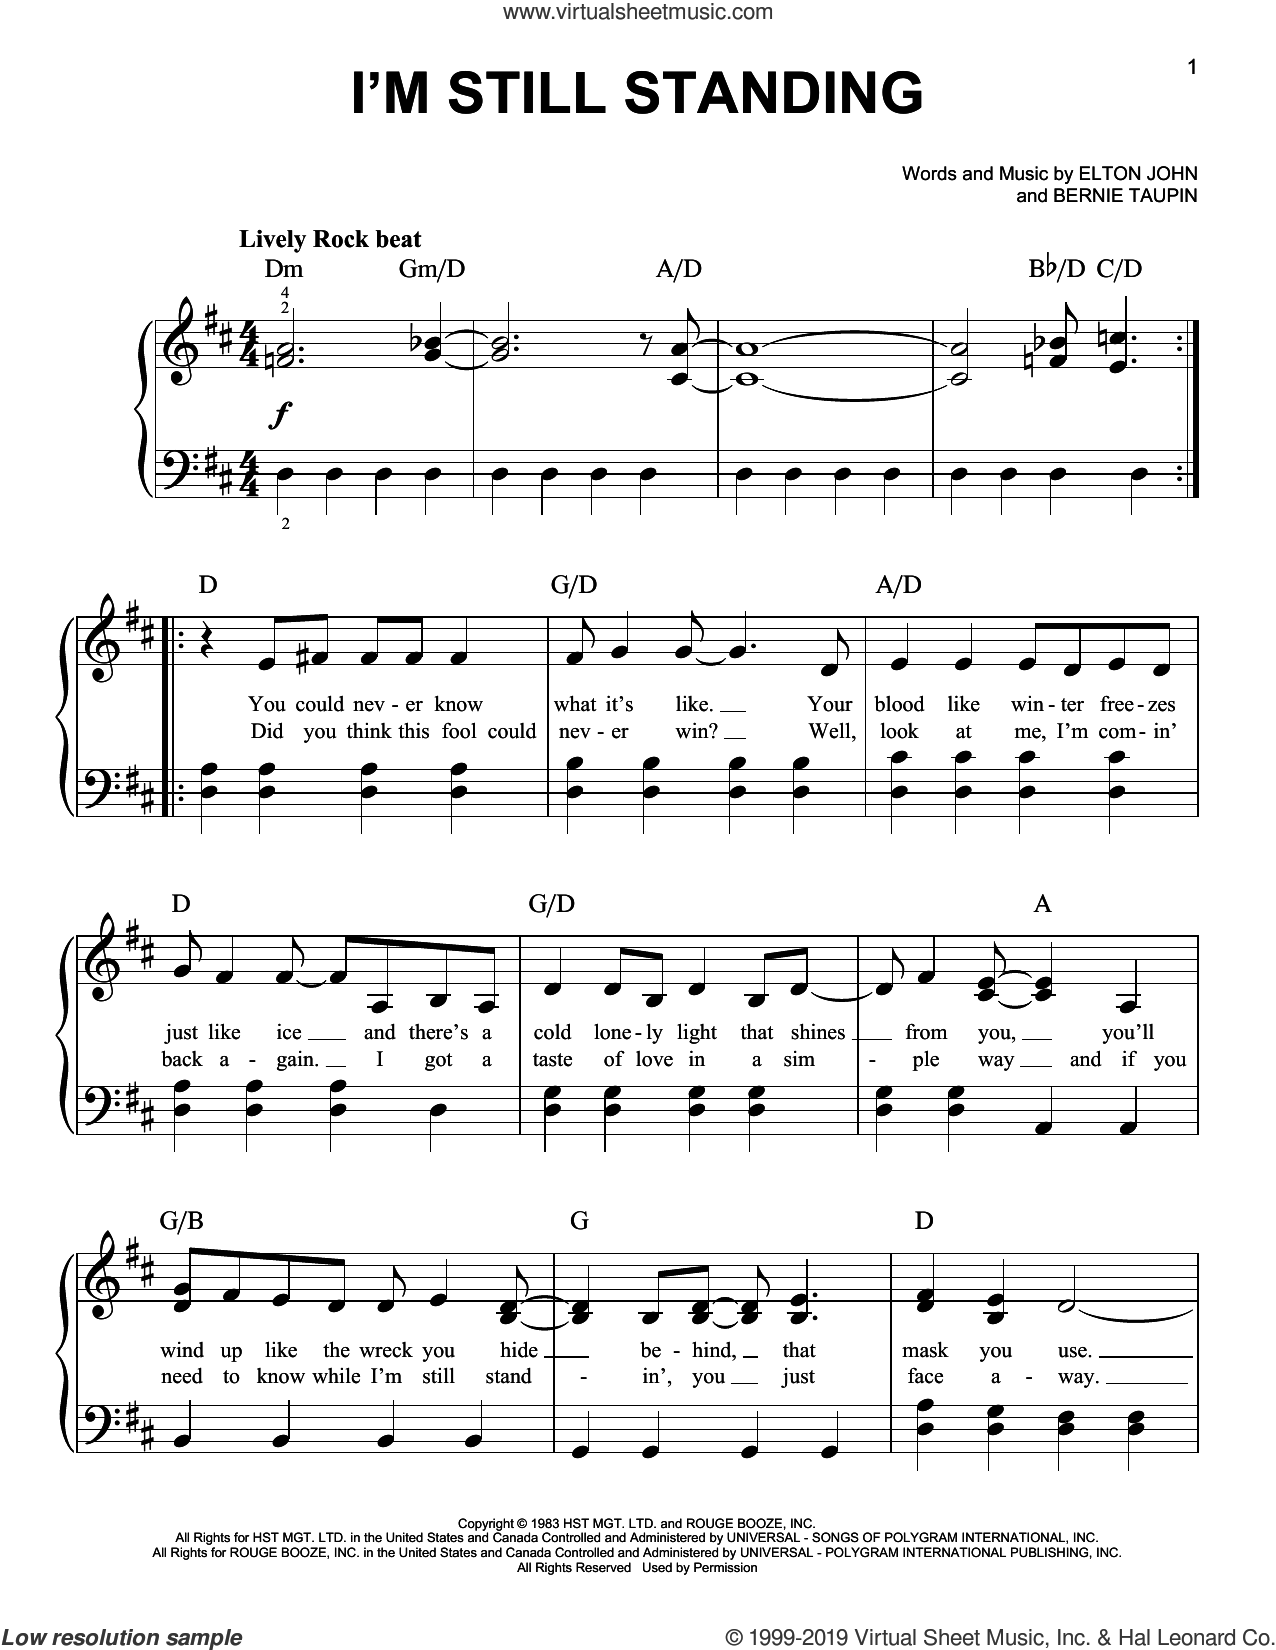 I'm Still Standing (from Rocketman) sheet music for piano solo by Taron Egerton, Bernie Taupin and Elton John, easy skill level